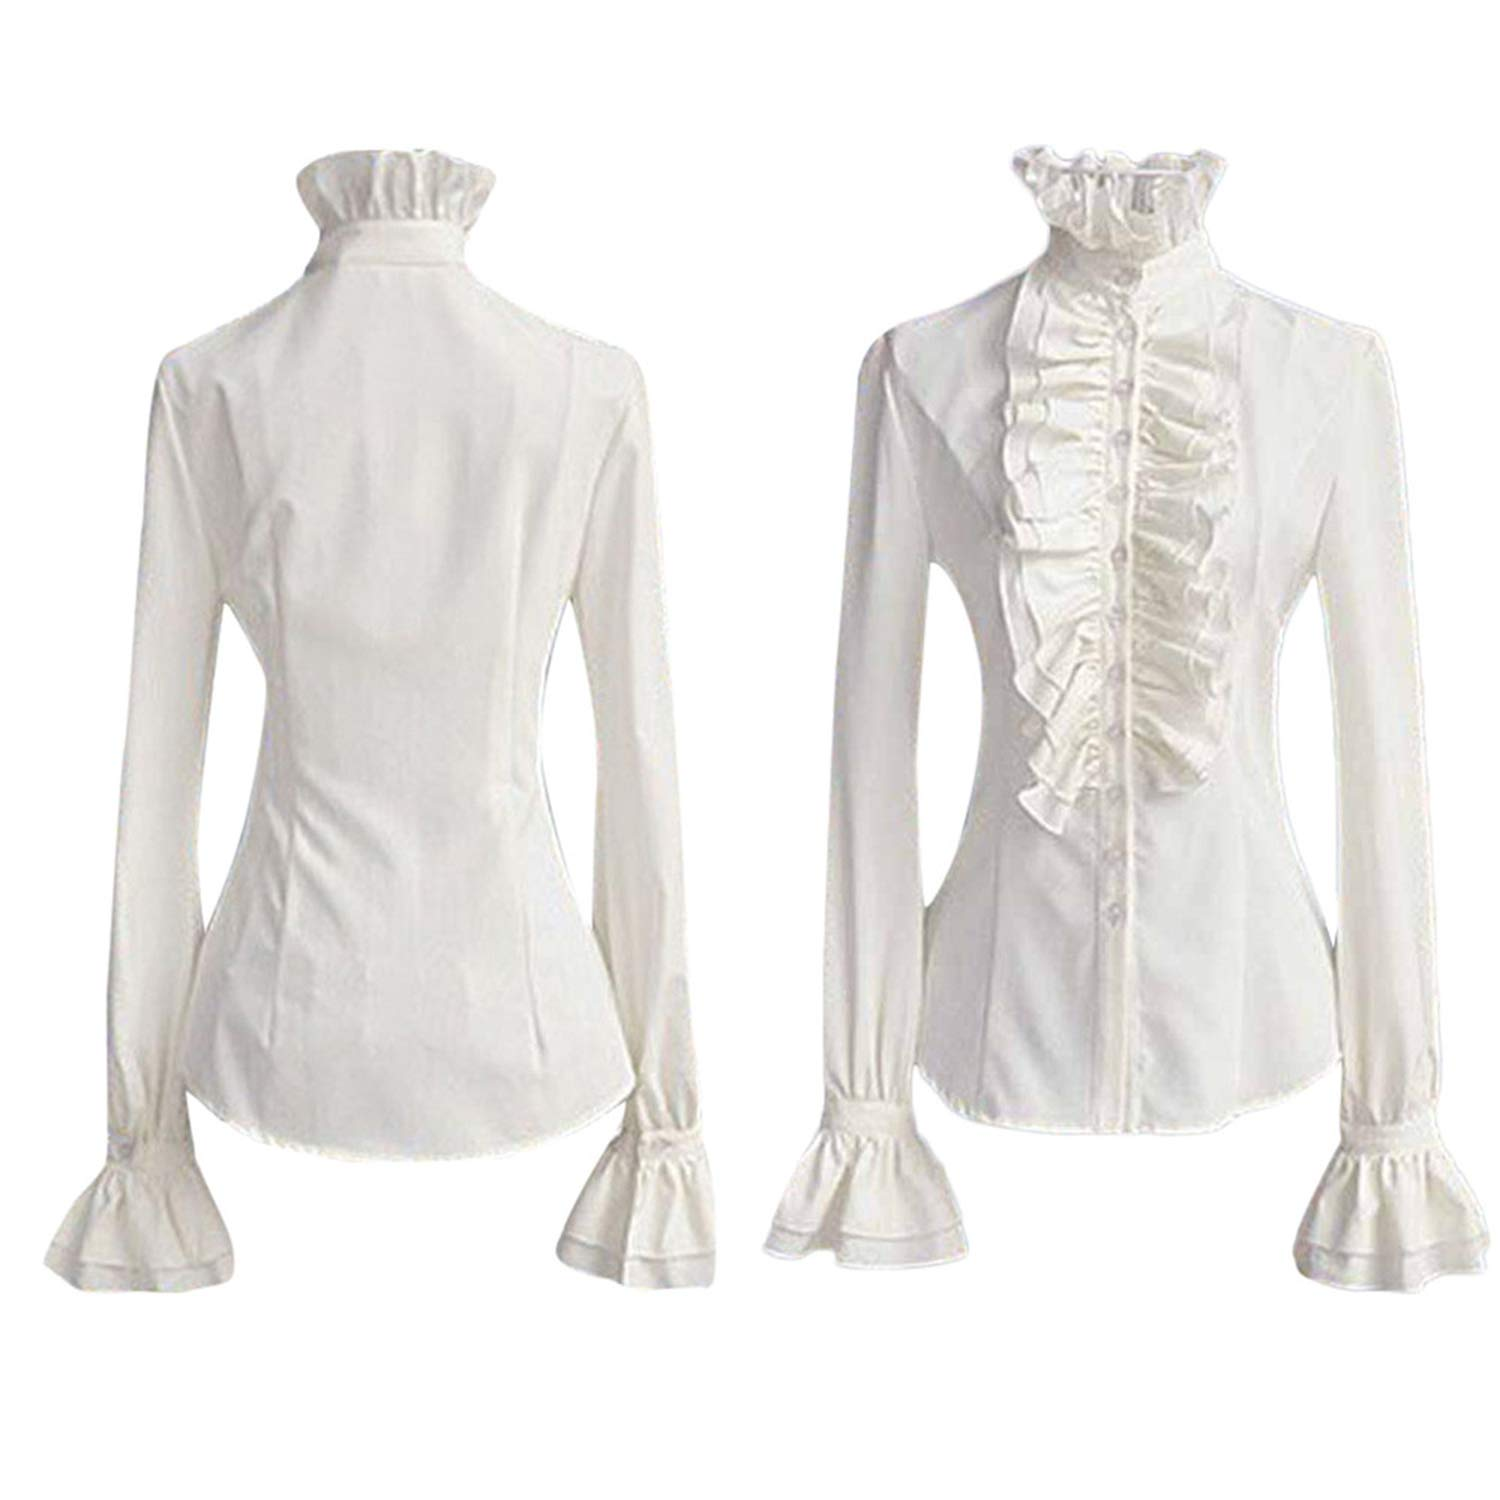 ed6546c7401 Office White Stand Neck Ruffle Blouse Women Lace-up Solid Collar Tie ...